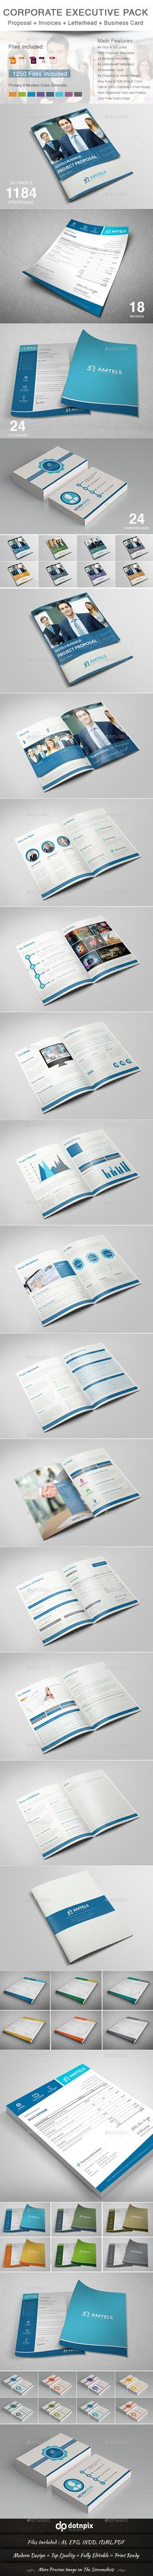 construction proposal templates%0A Corporate Executive Pack  Proposal TemplatesCorporate